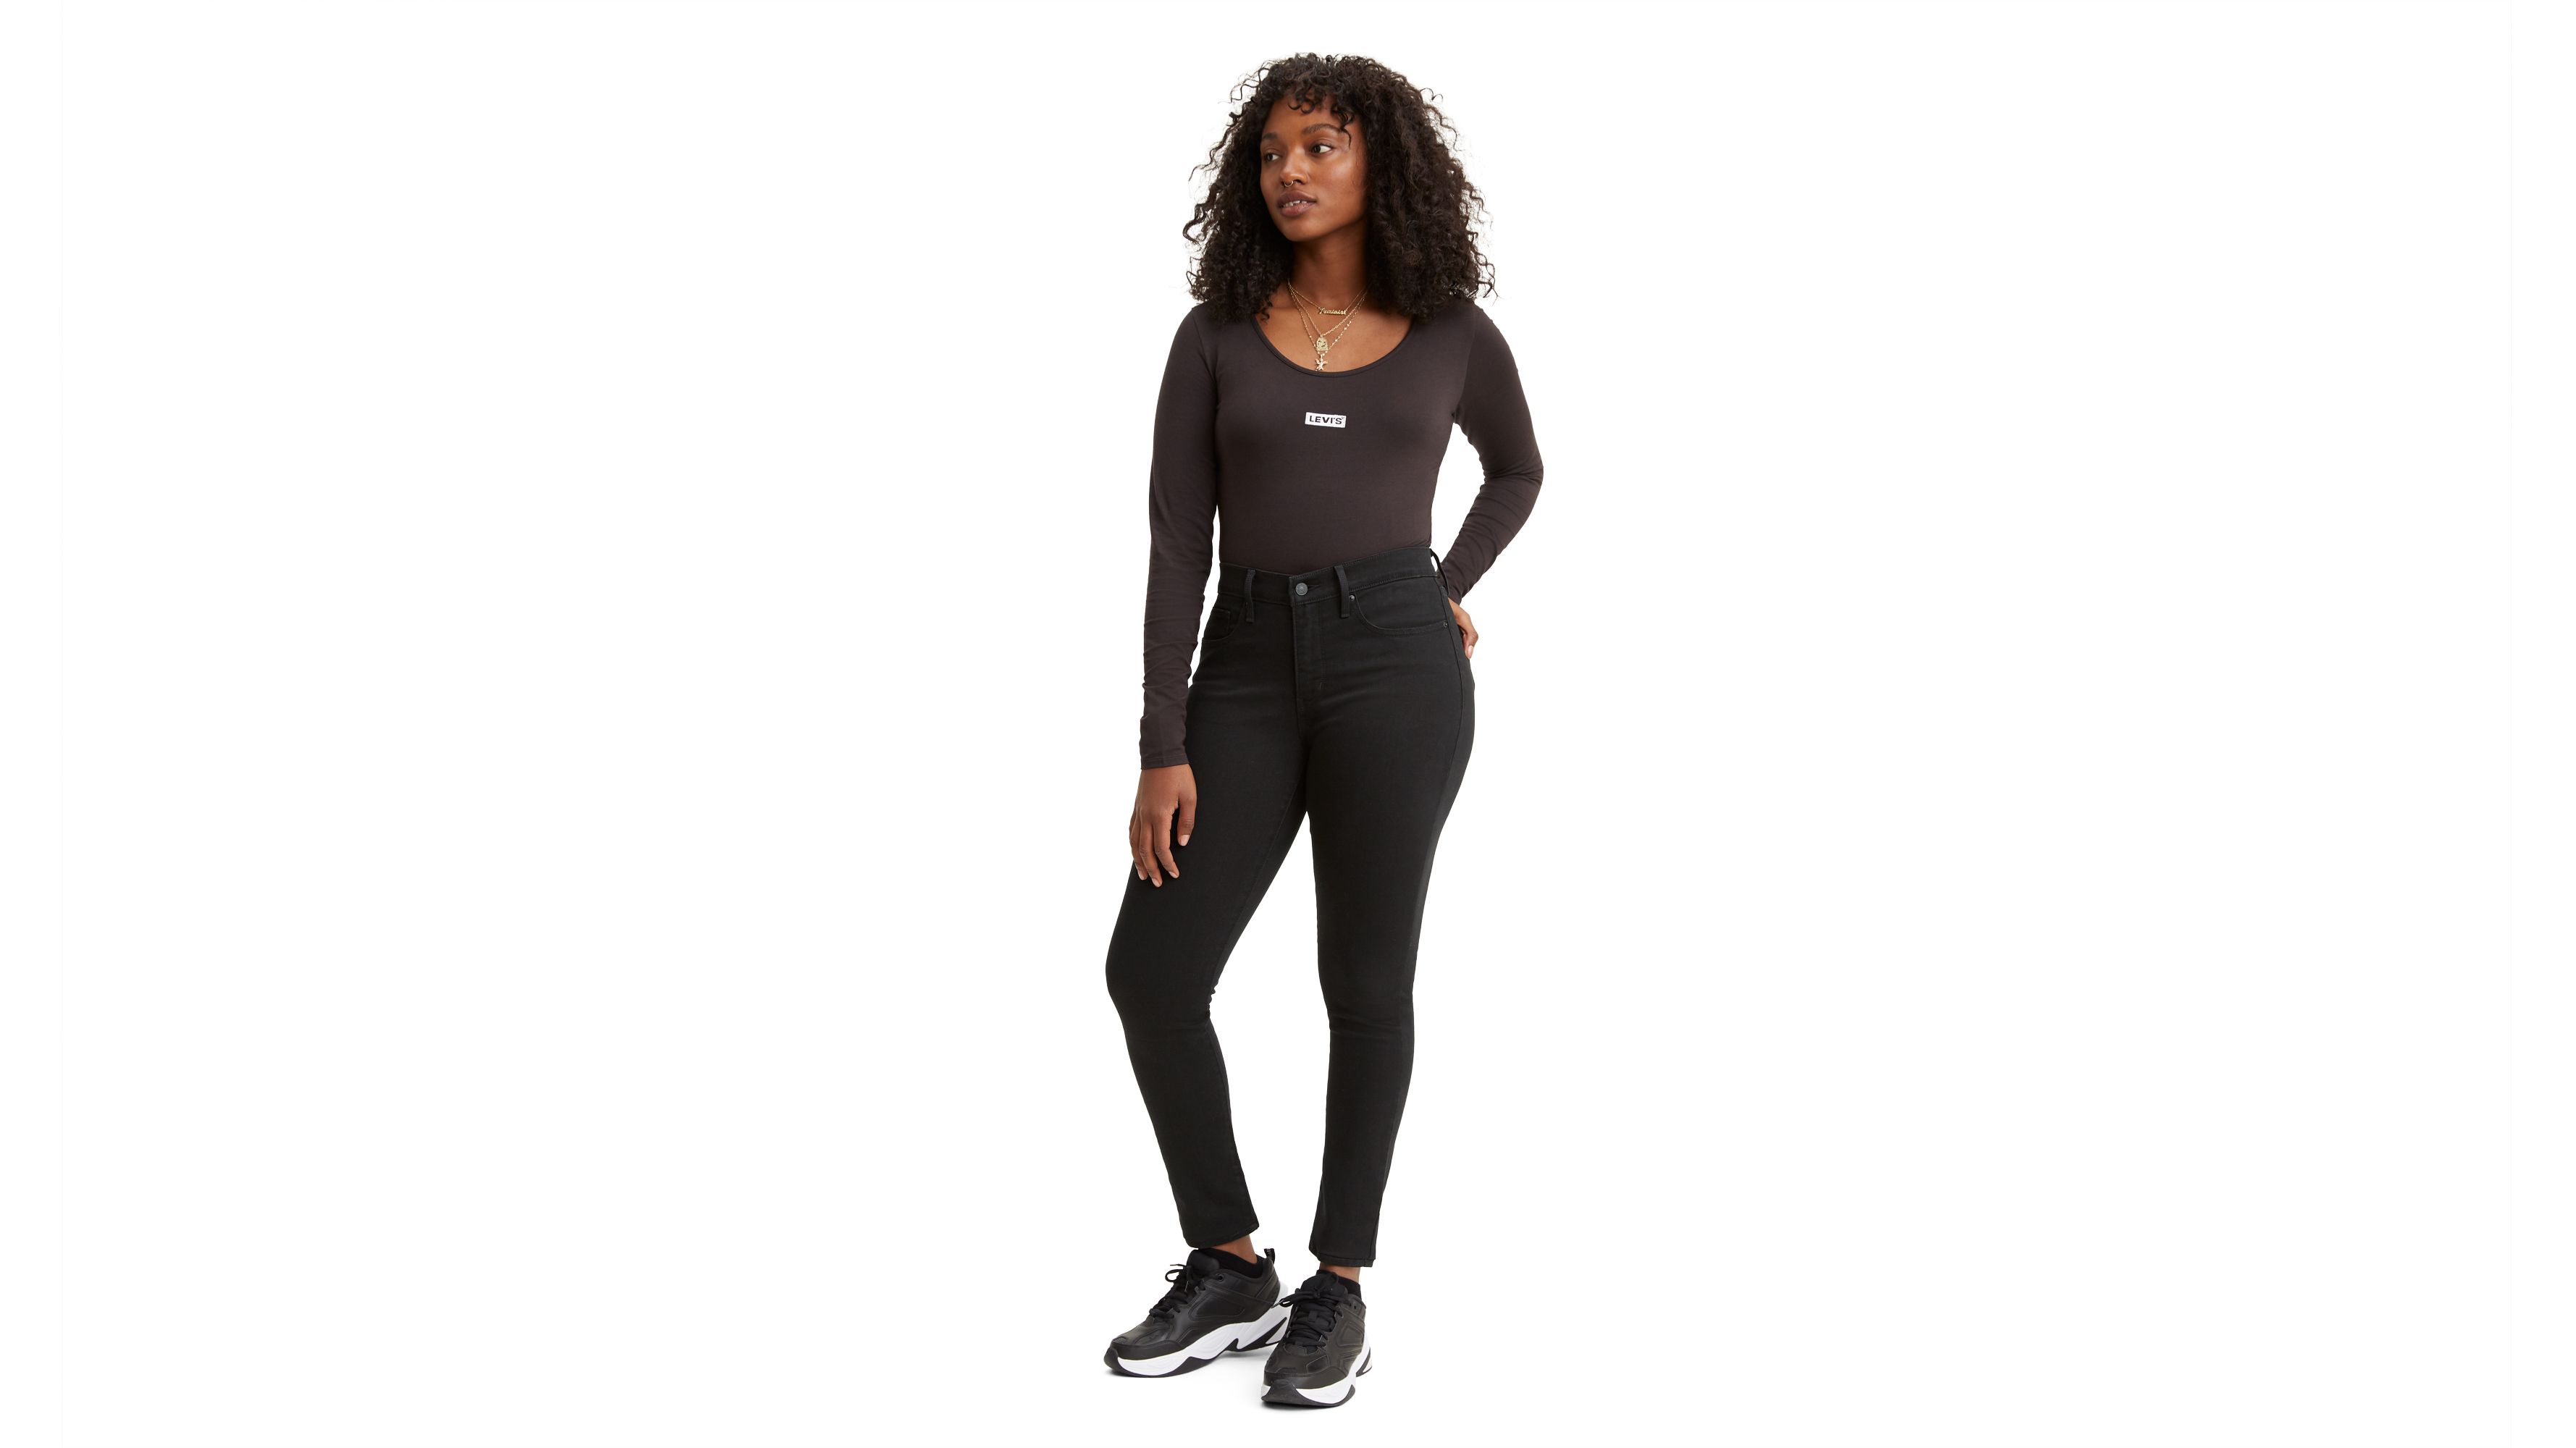 JeansLevi's® Black Jeans Women RippedSkinnyamp; for High US Waisted QrdxthCs